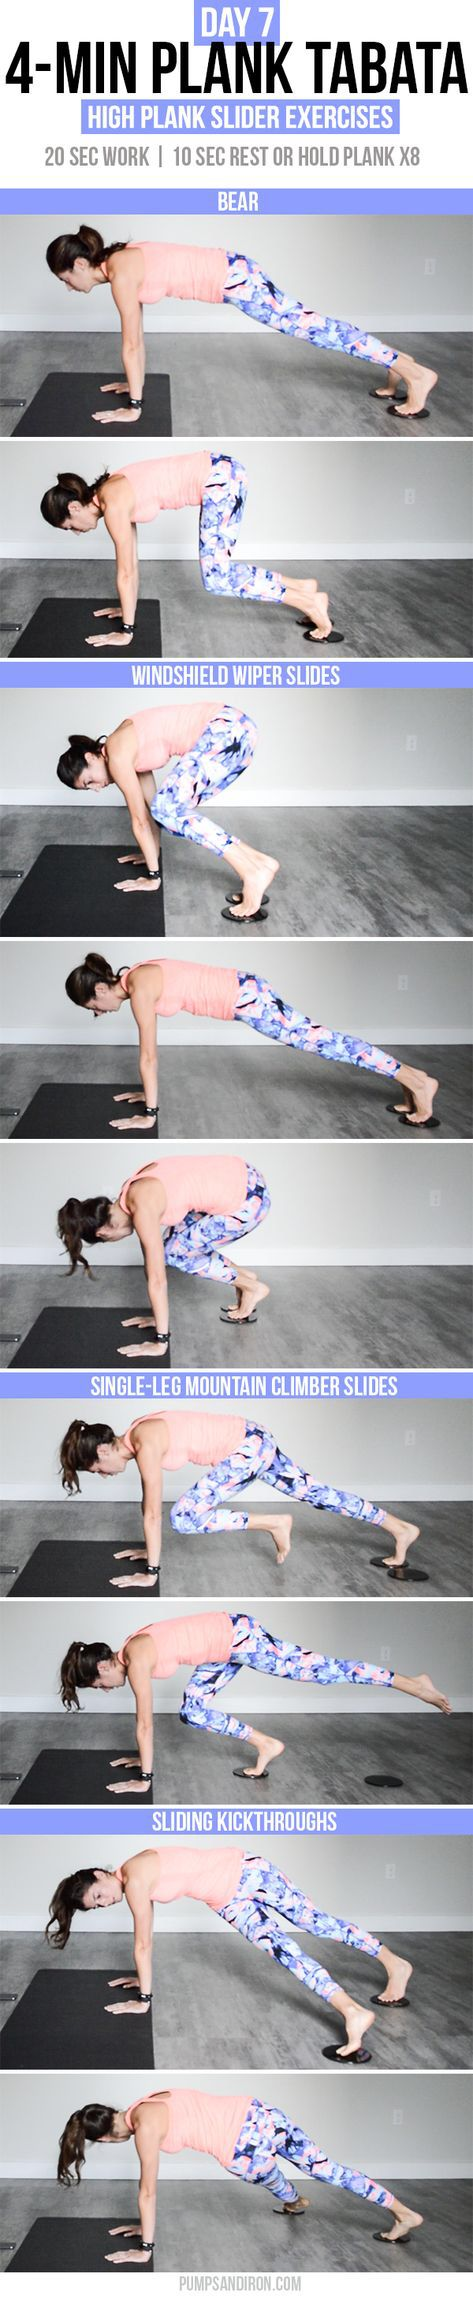 4-Min Plank Tabata Challenge (Day 7): Sliding High Plank Exercises